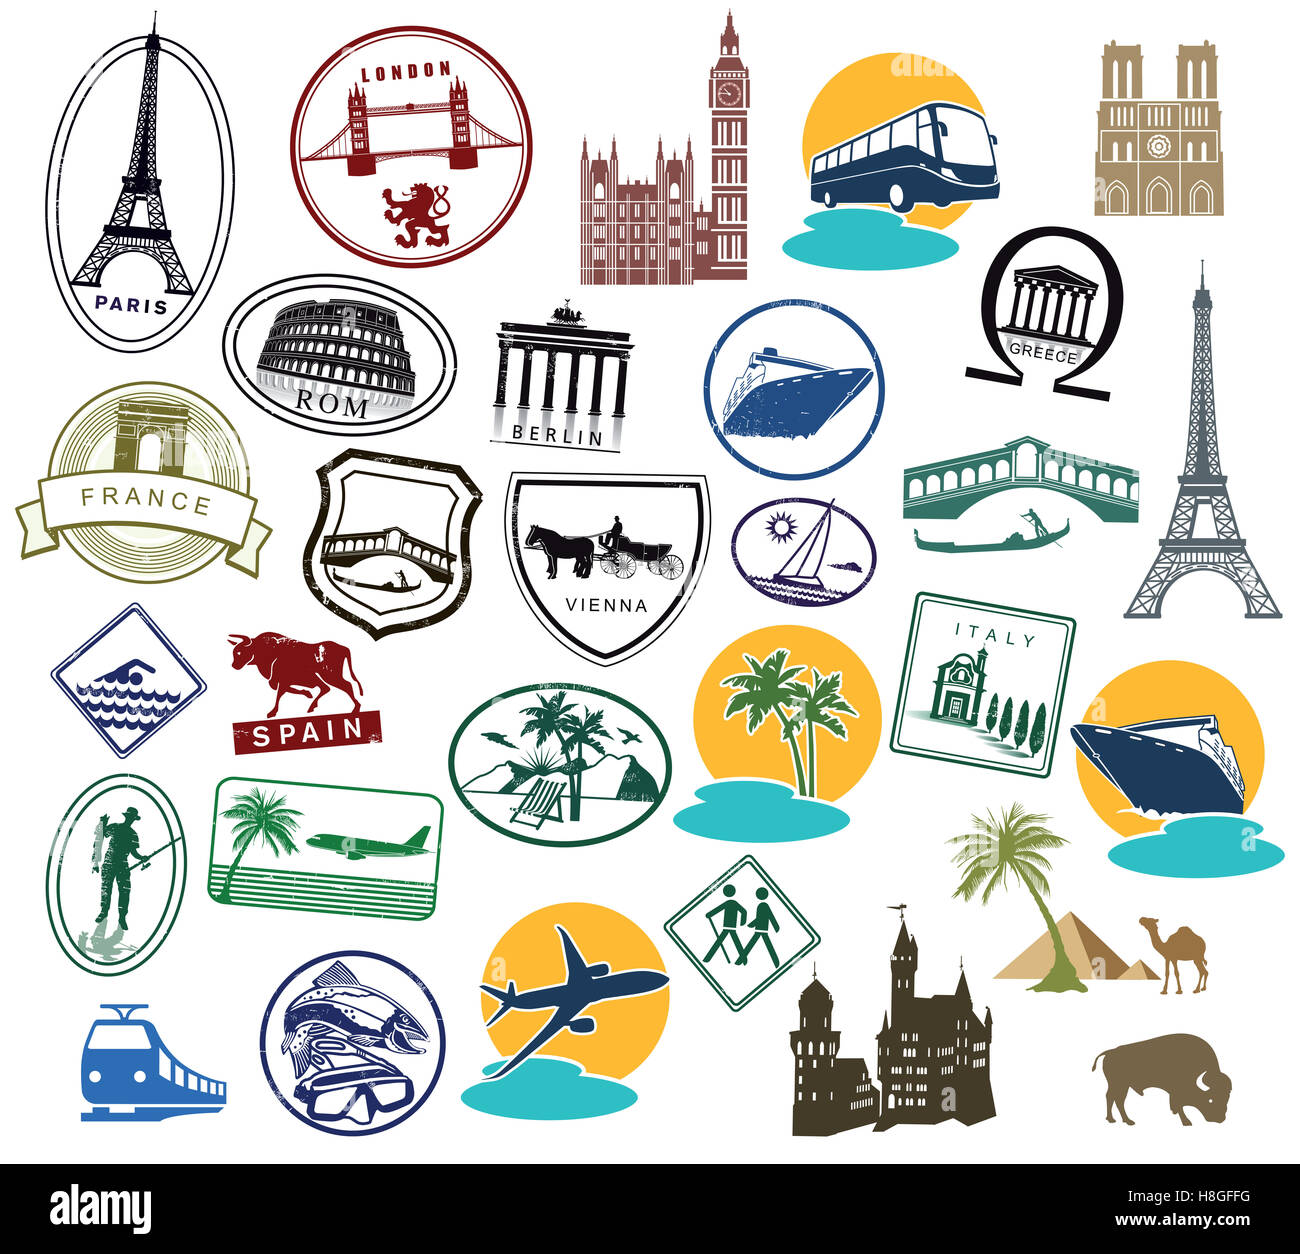 Europe Stickers and Stamps - Stock Image